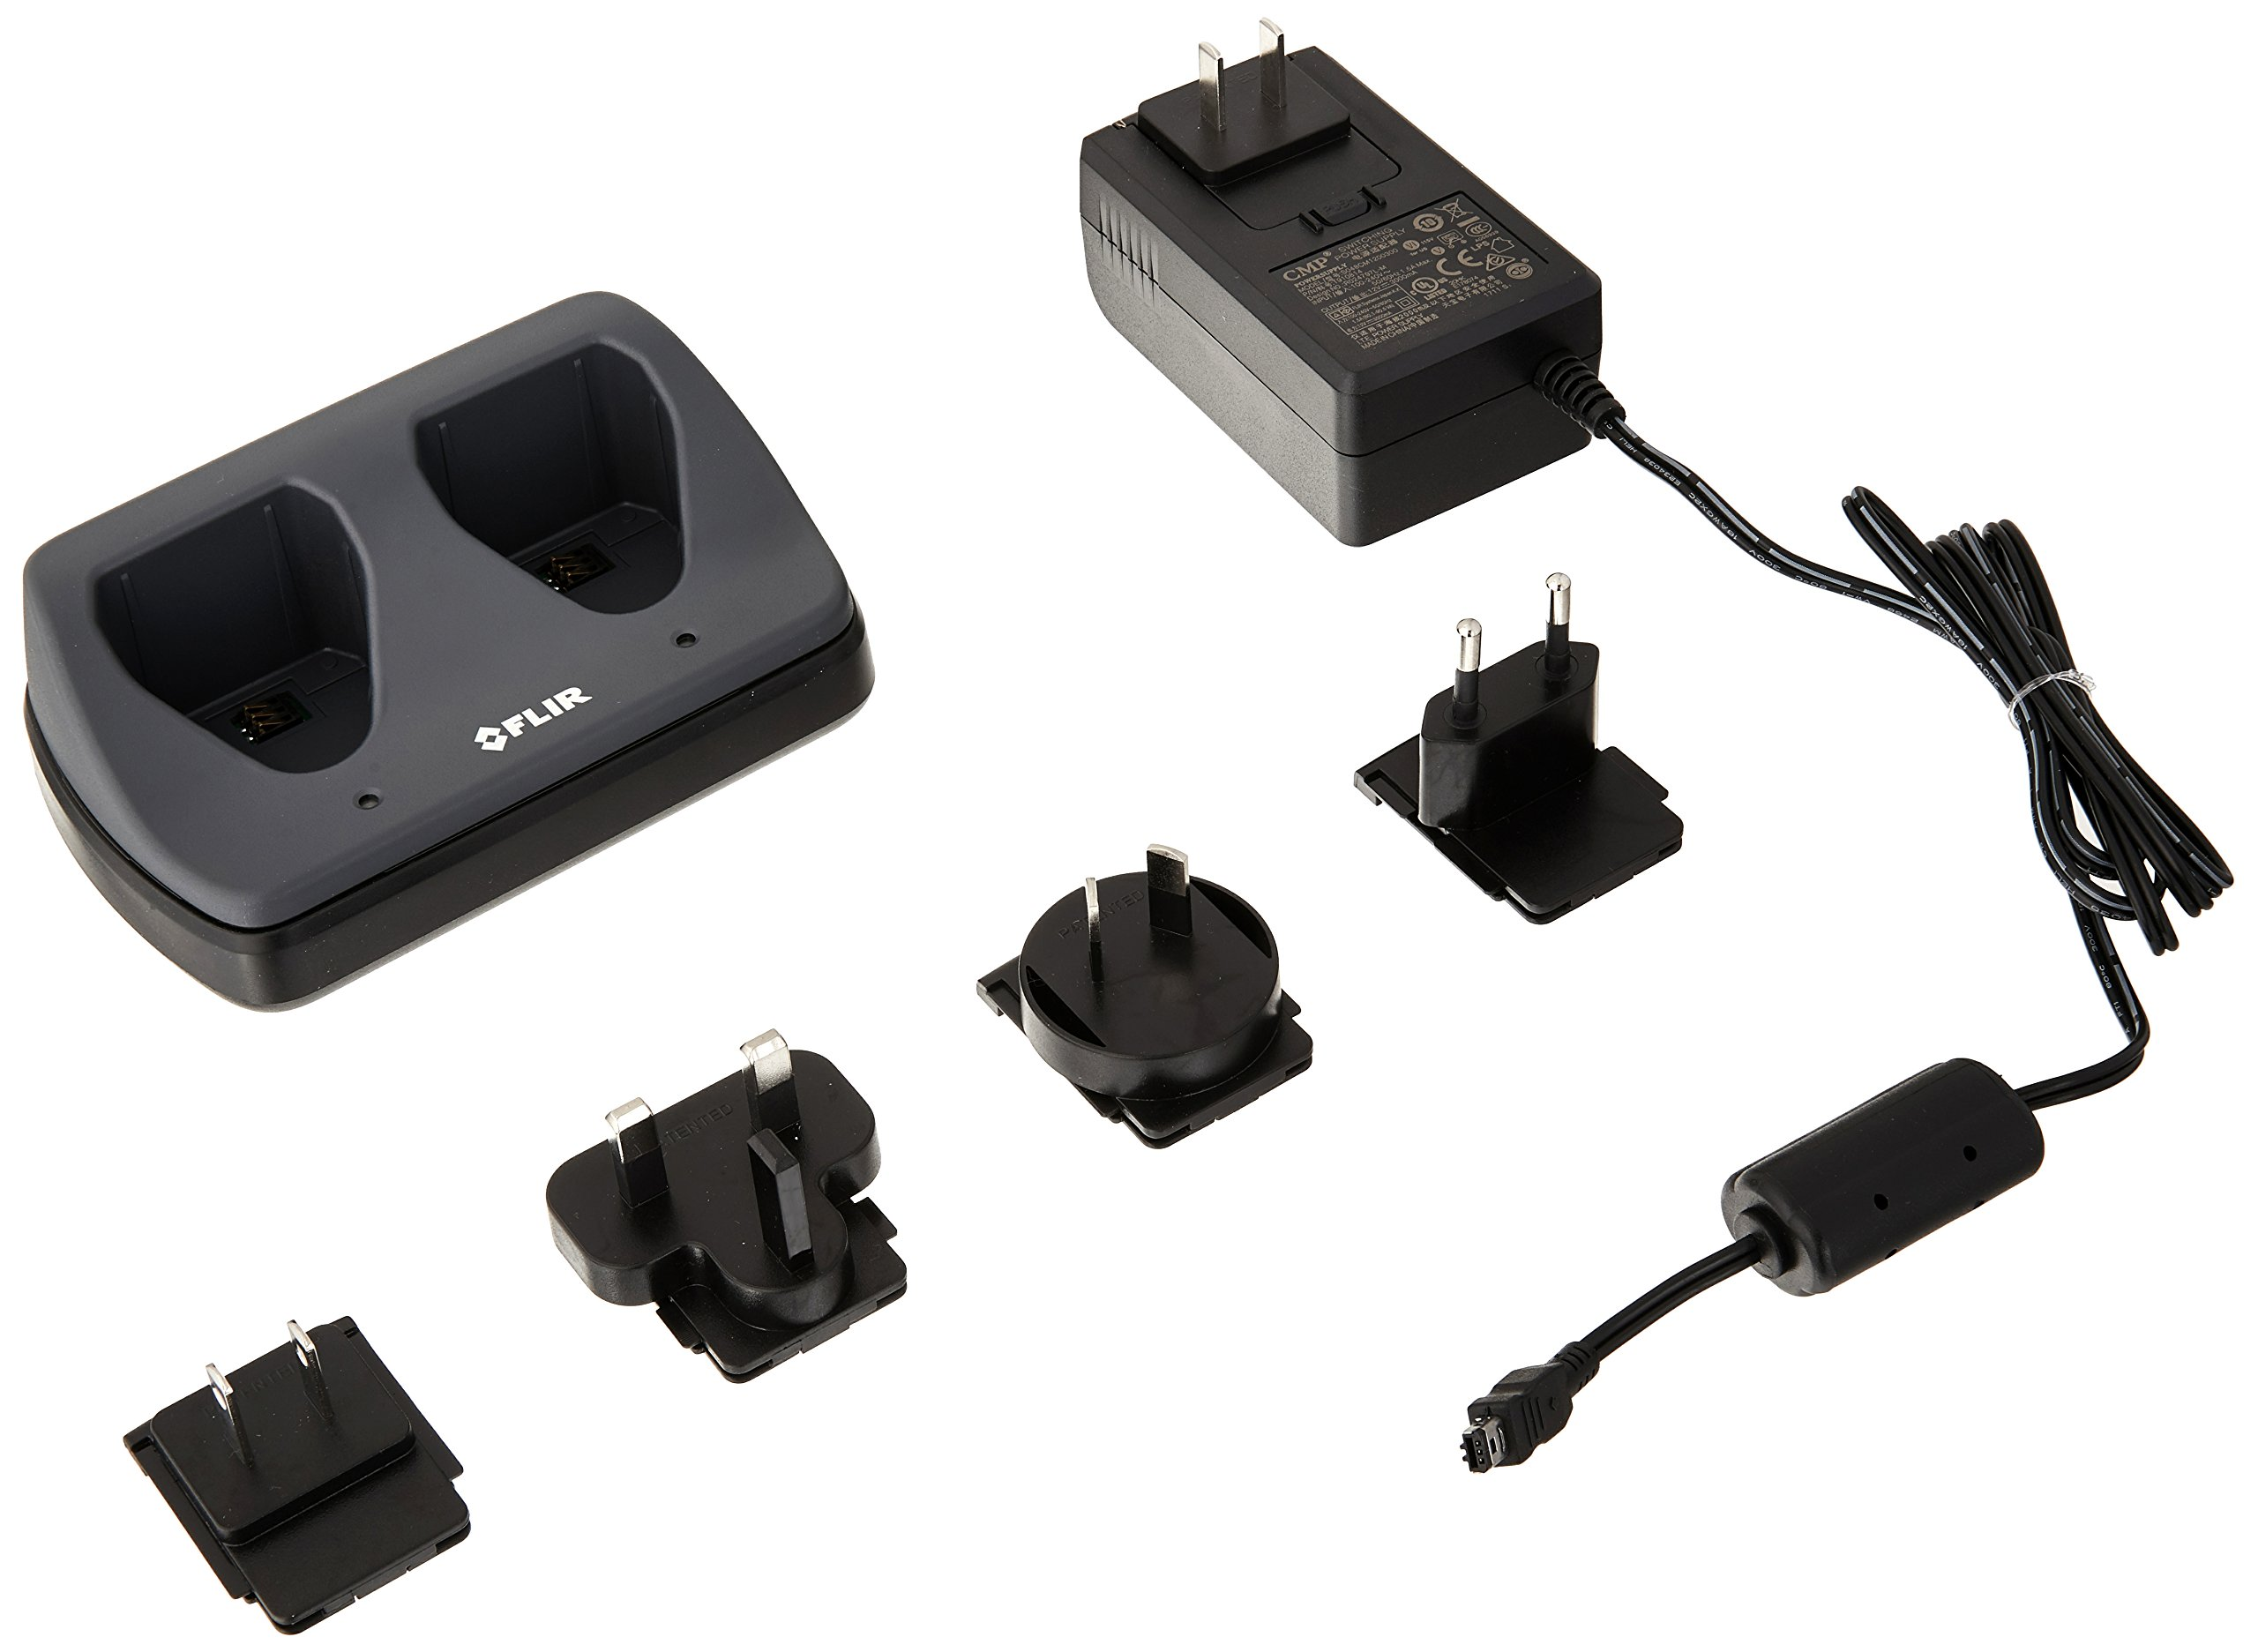 FLIR T198126 Two Bay Battery Charger for T6xx Series Thermal Cameras